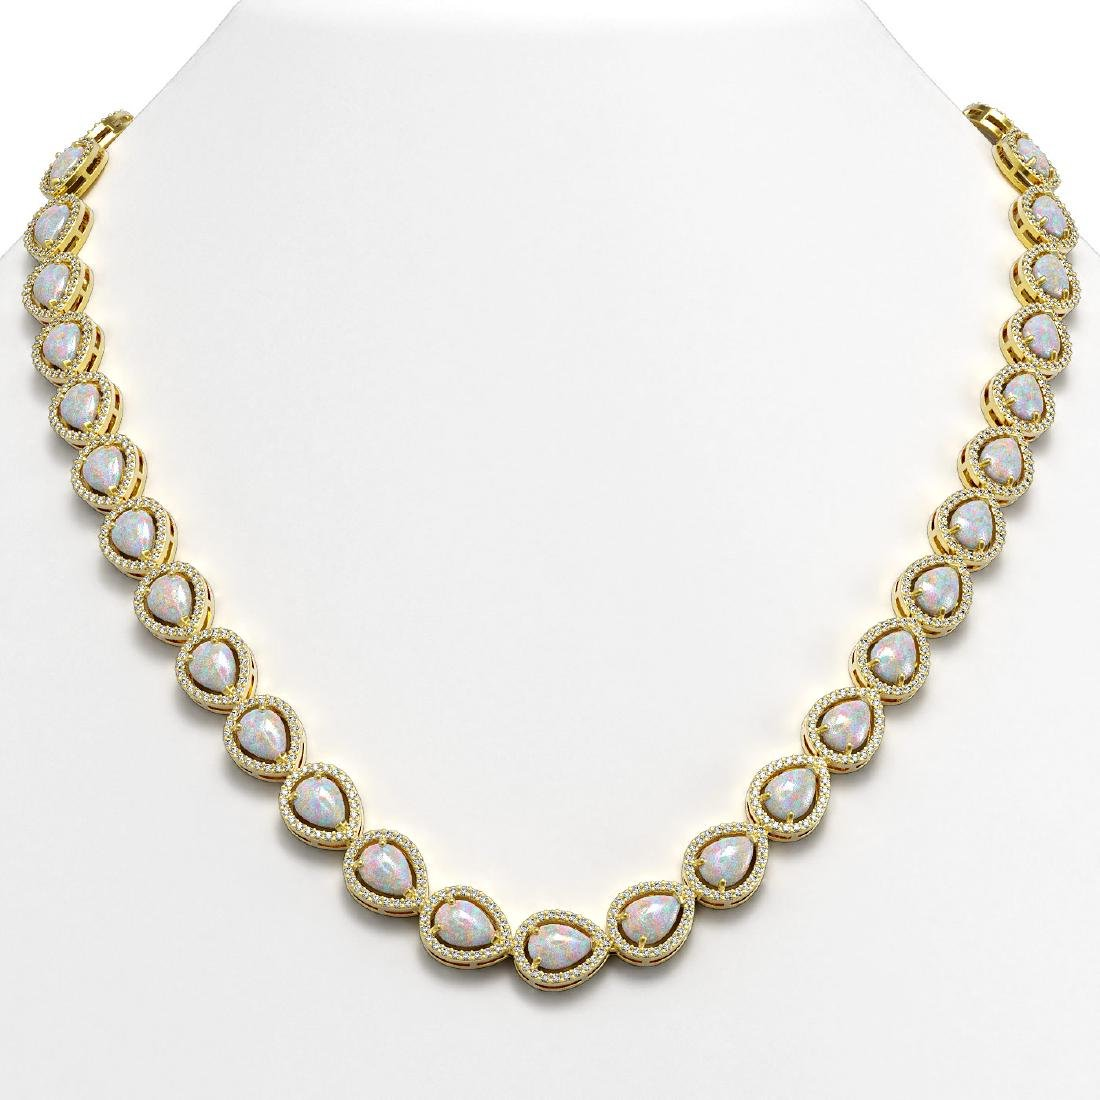 27.93 CTW Opal & Diamond Halo Necklace 10K Yellow Gold